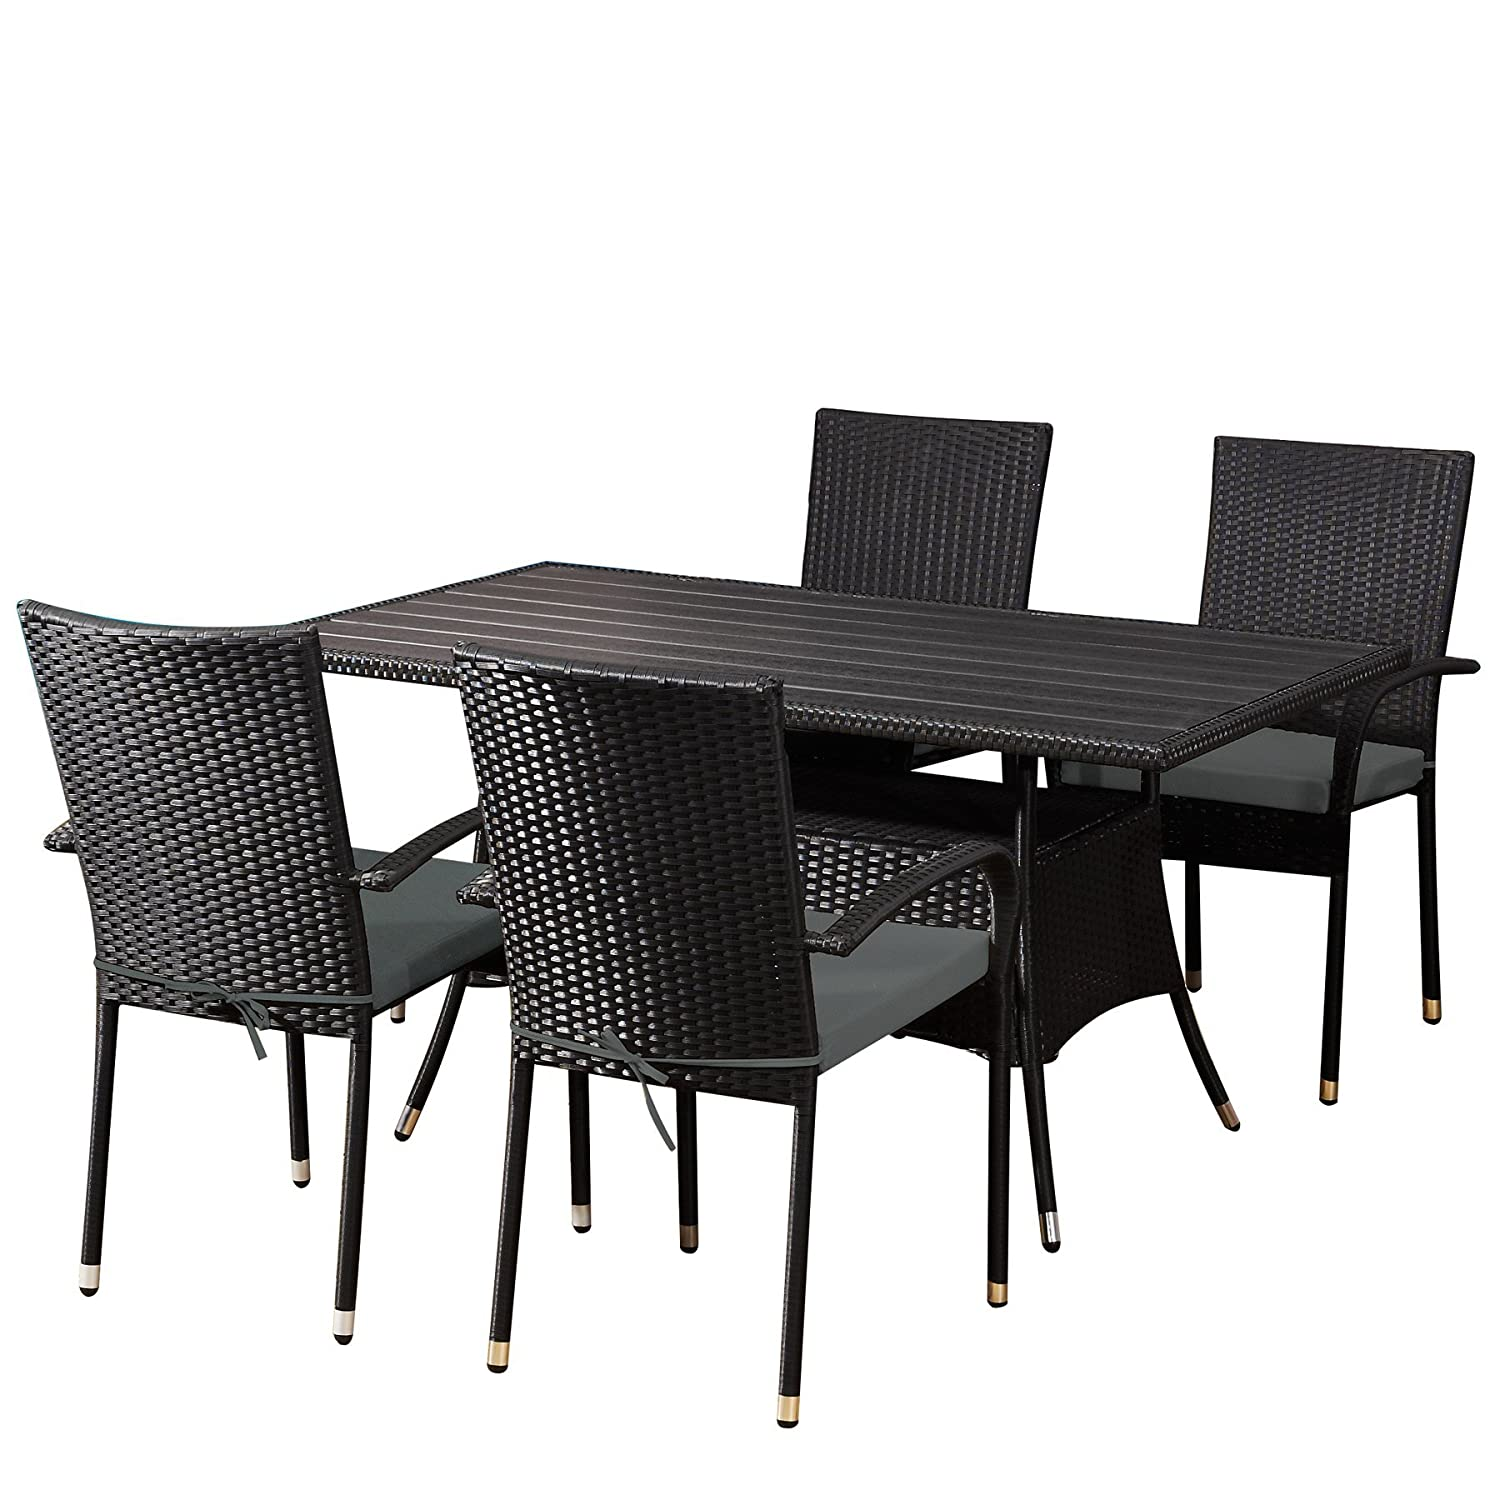 garten set lanzarote in schwarz gartenm bel essgruppe dining set aus polyrattan von jet line g nstig. Black Bedroom Furniture Sets. Home Design Ideas